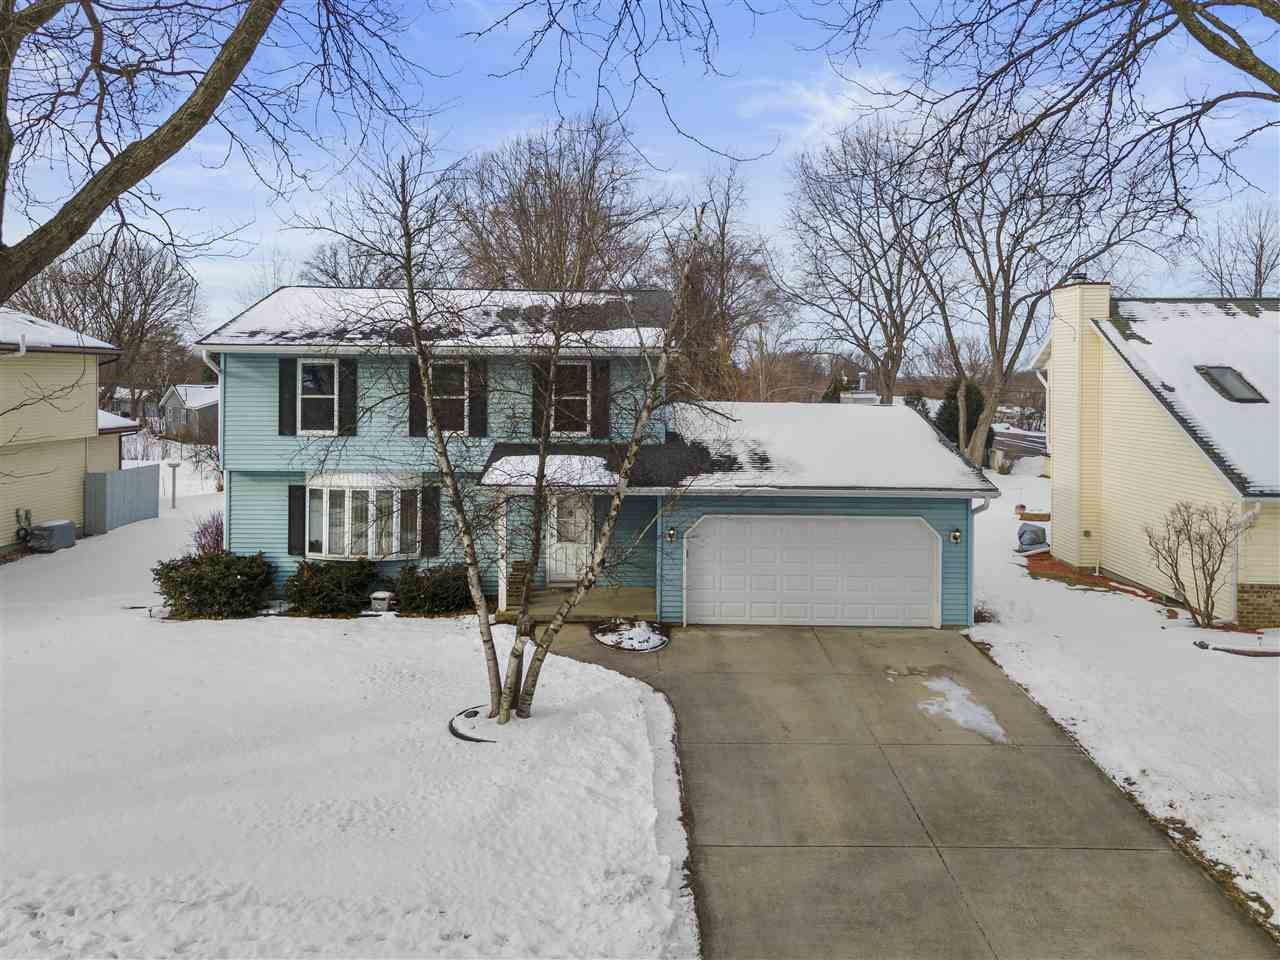 22 Lamplighter Way, Madison, WI 53714 - MLS#: 1900859